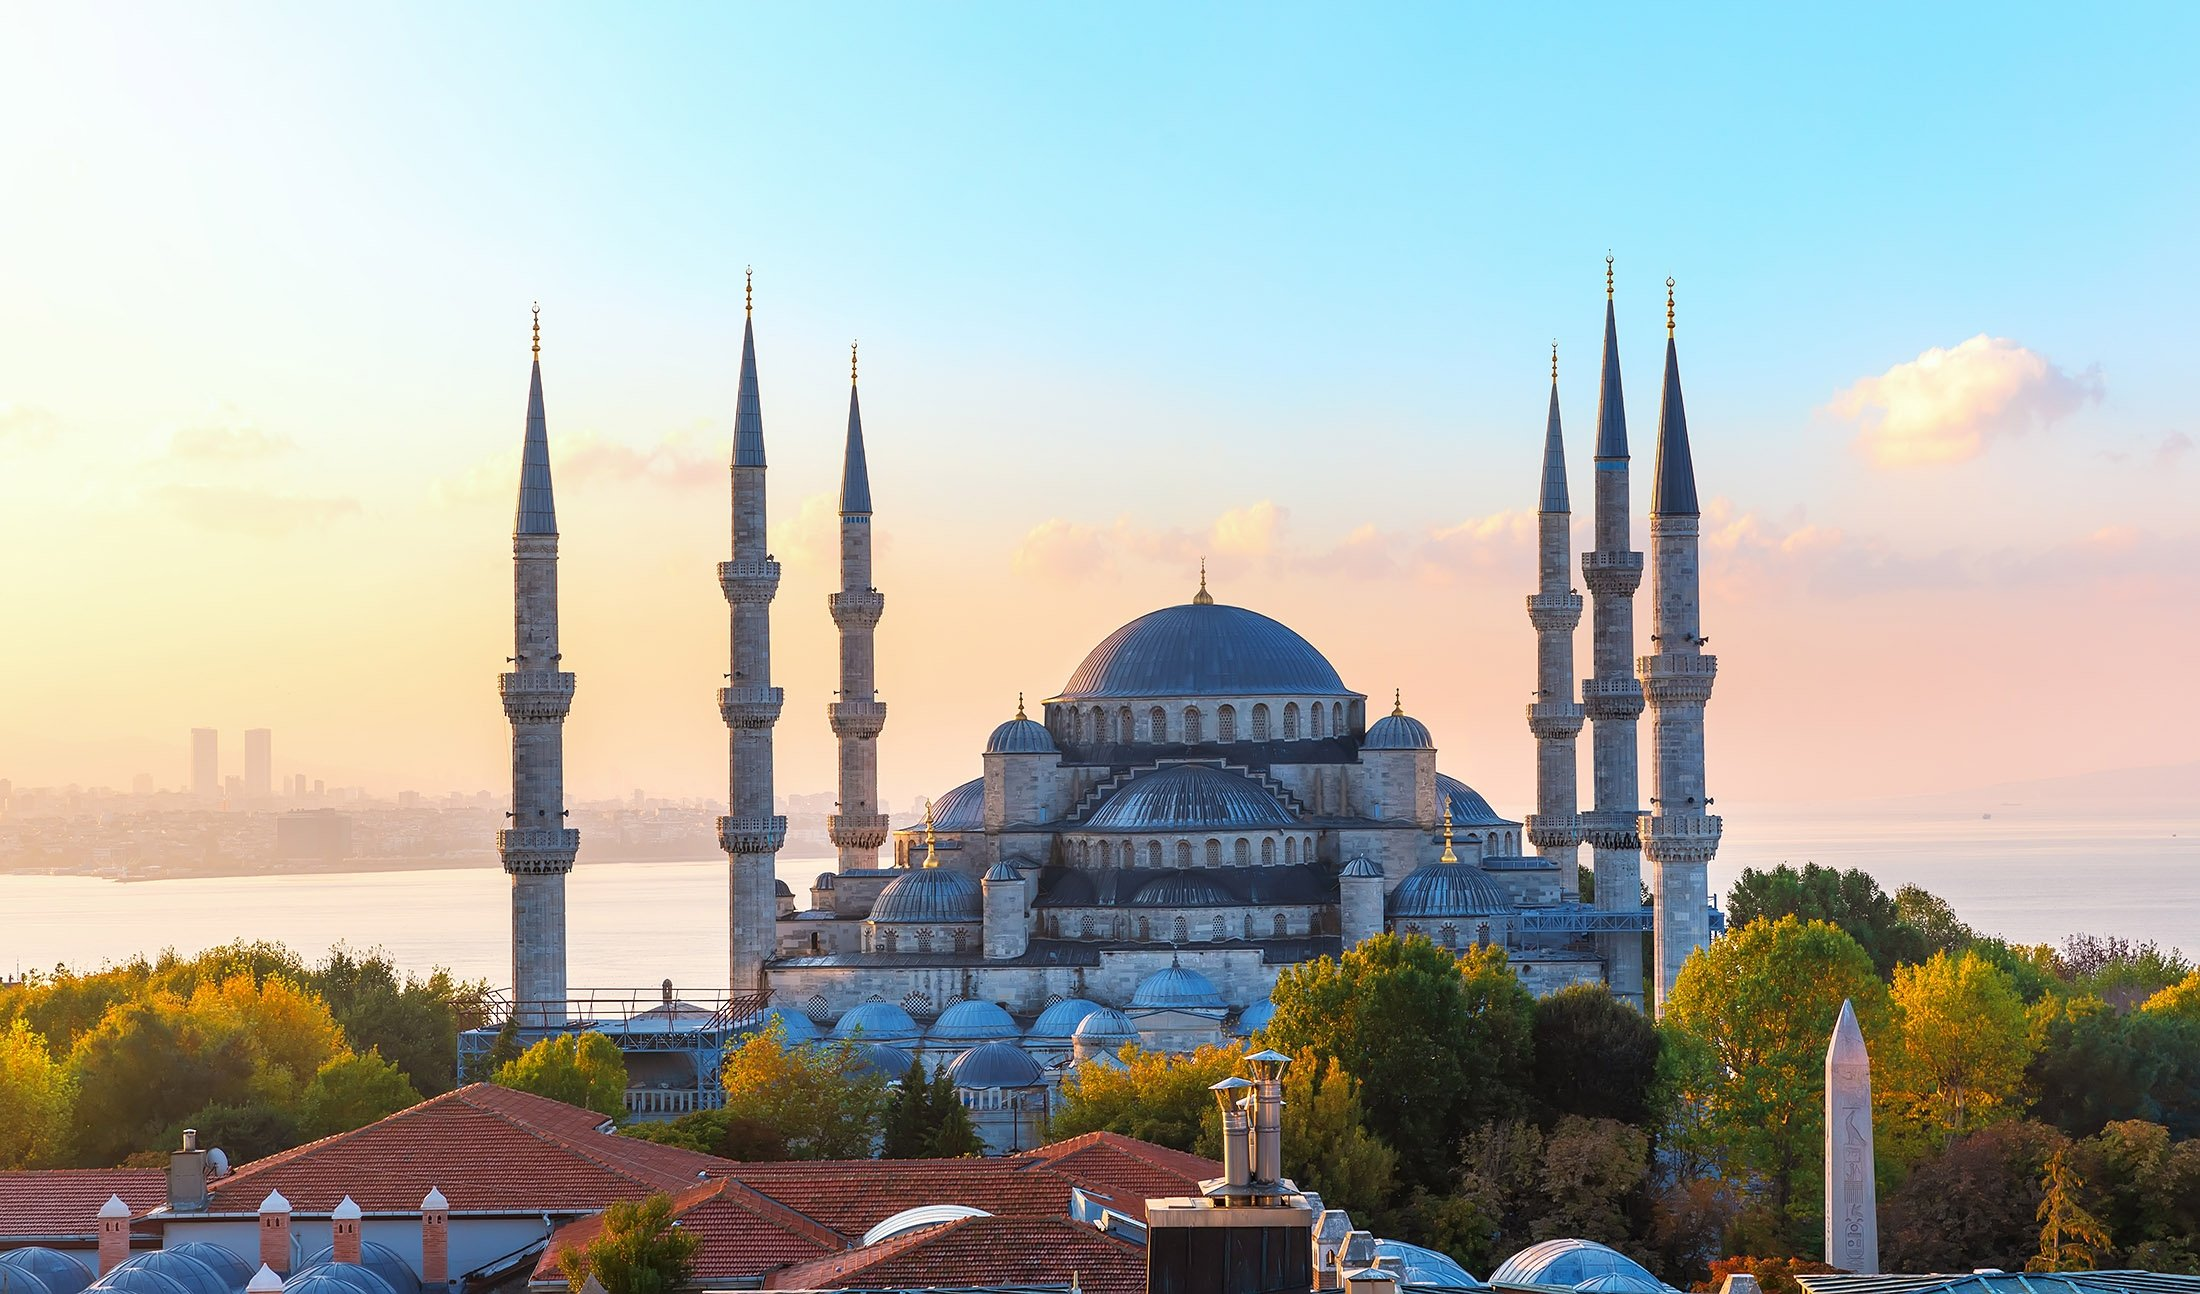 The Blue Mosque, also known as Sultan Ahmet Mosque, in Turkey's Istanbul. (Shutterstock Photo)